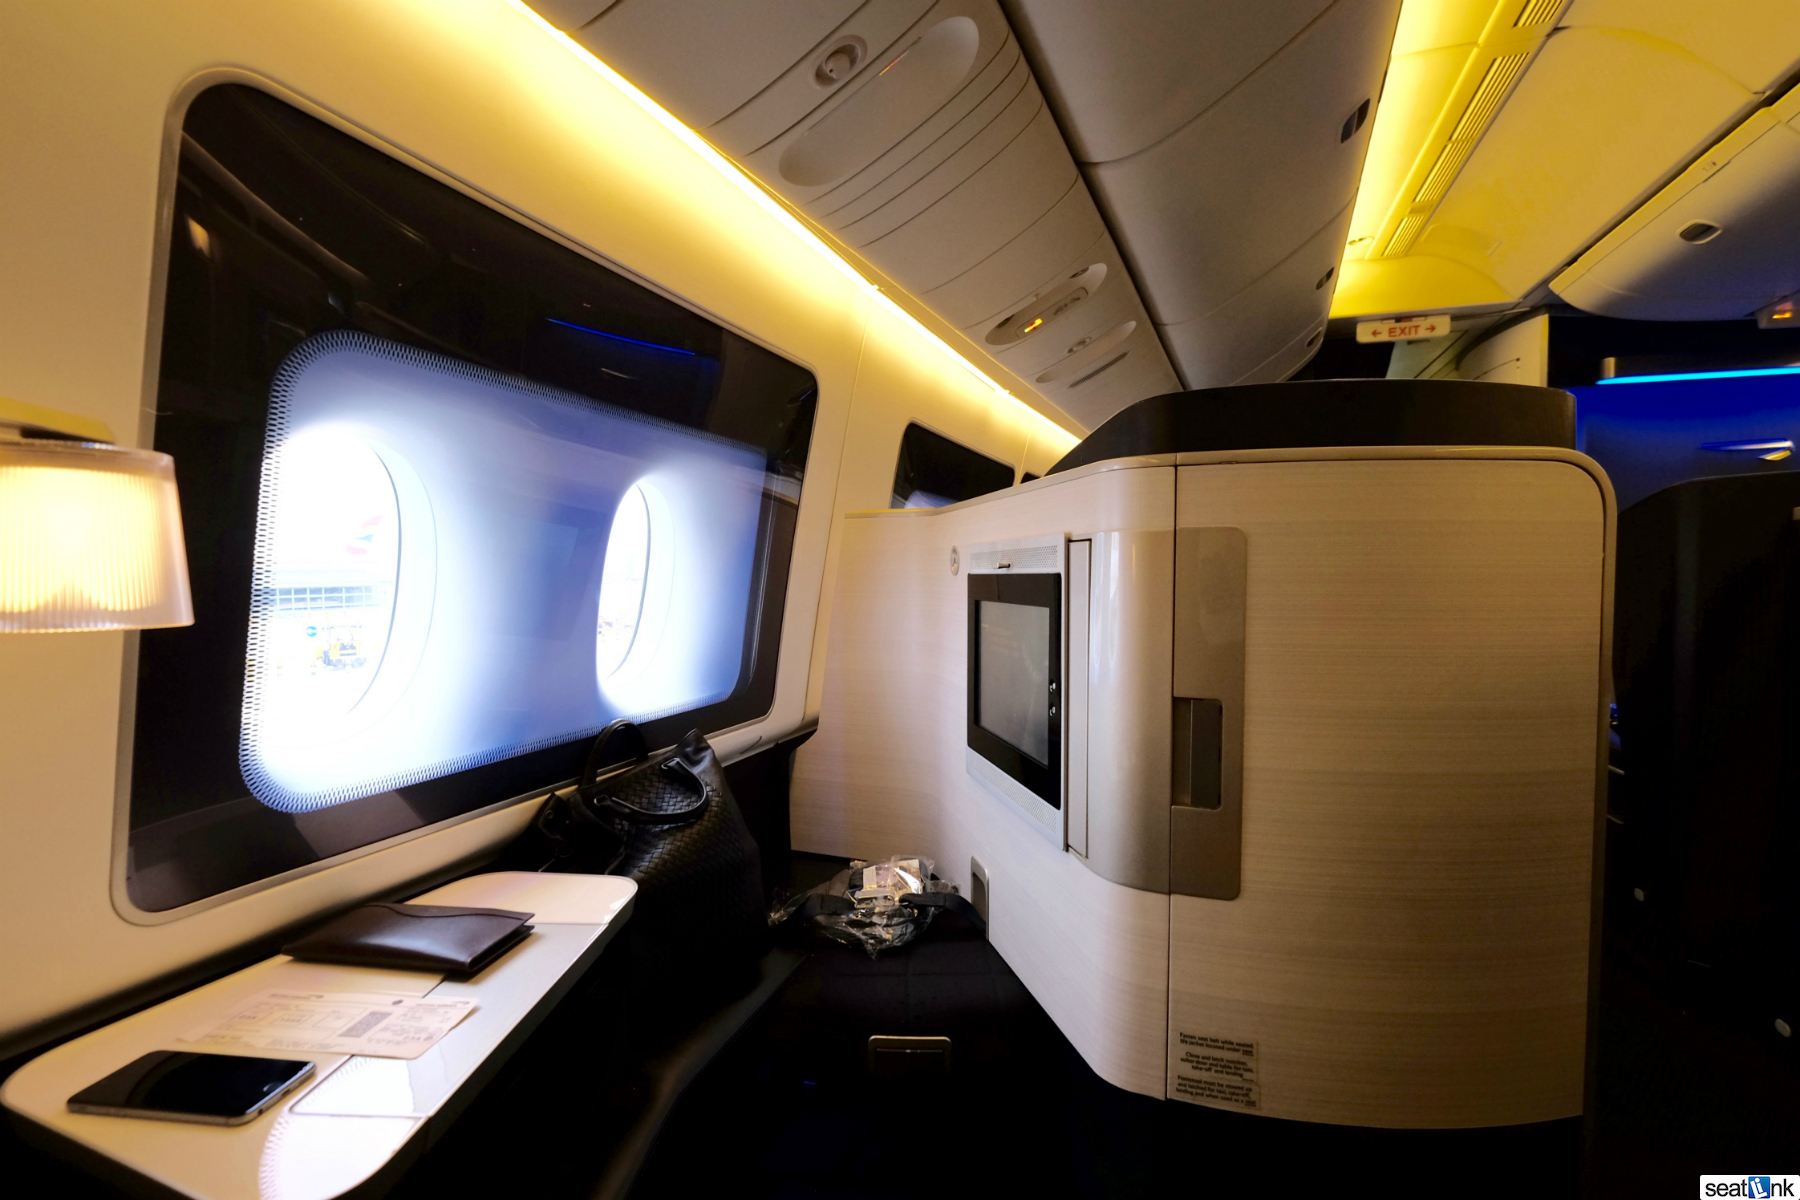 British Airways 777 First Class LHR to SEA [Review] - The ...British Airways First Class 777 Bed